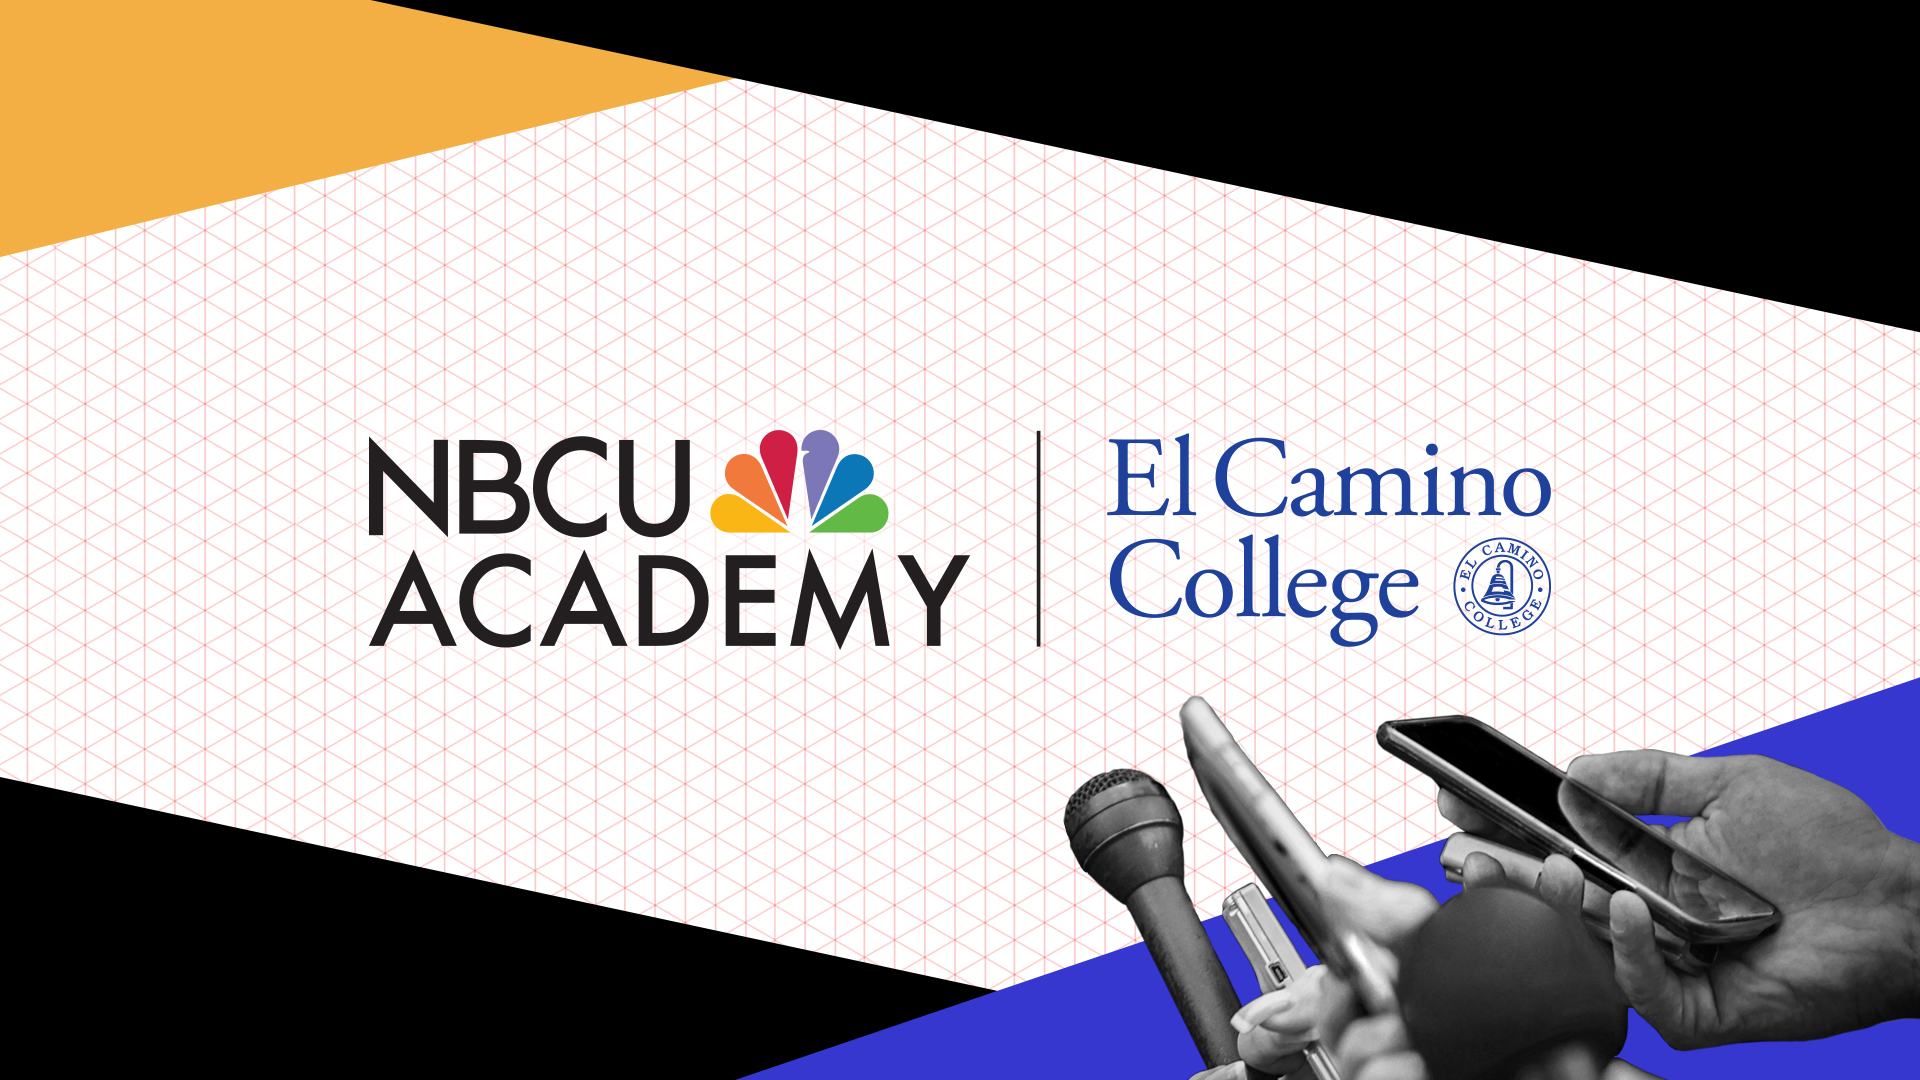 El Camino College Joins NBCU Academy Journalism Training Program